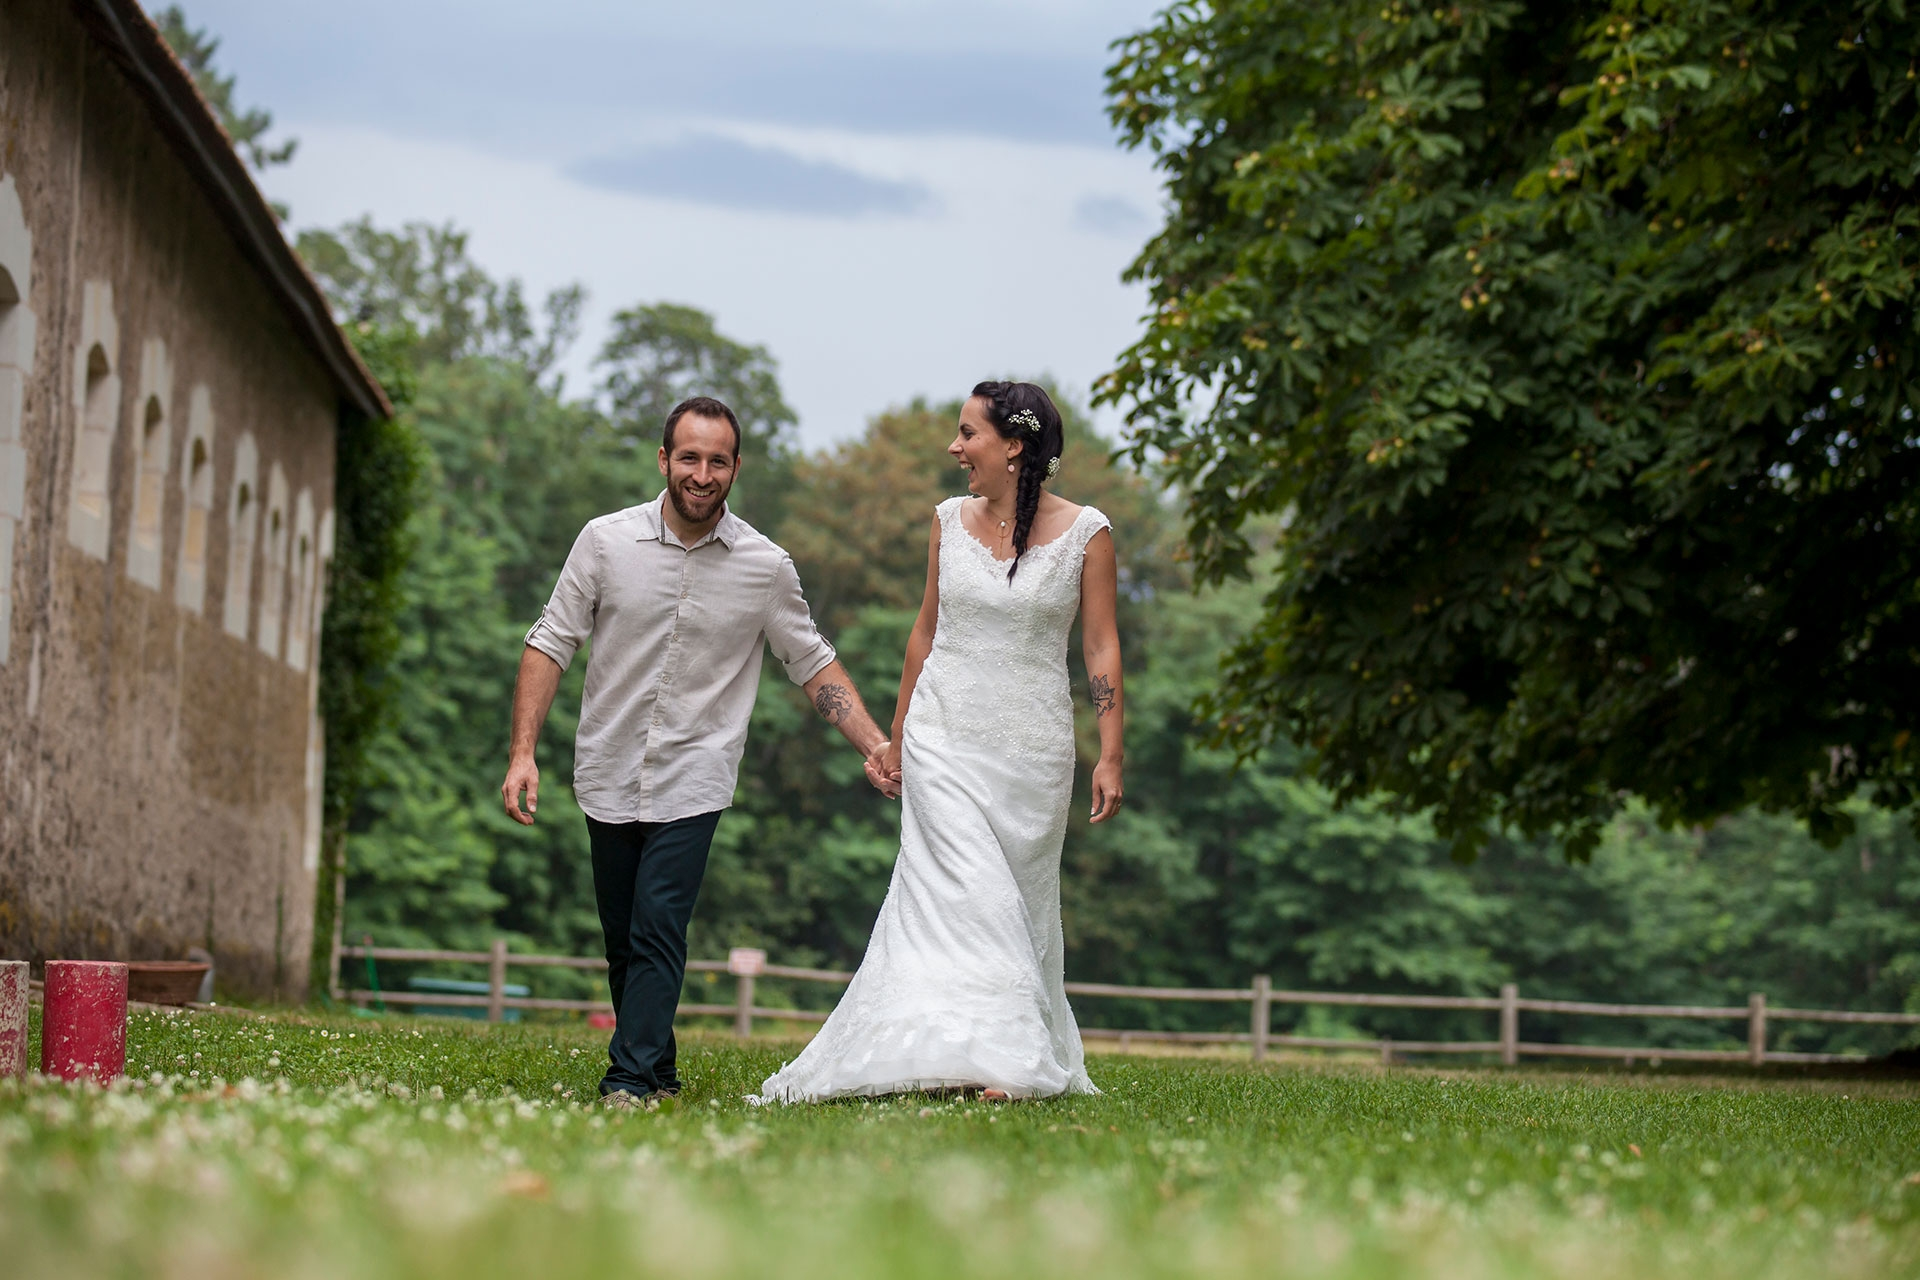 particuliers-evenements-mariage-oui-carla&jeremy-22